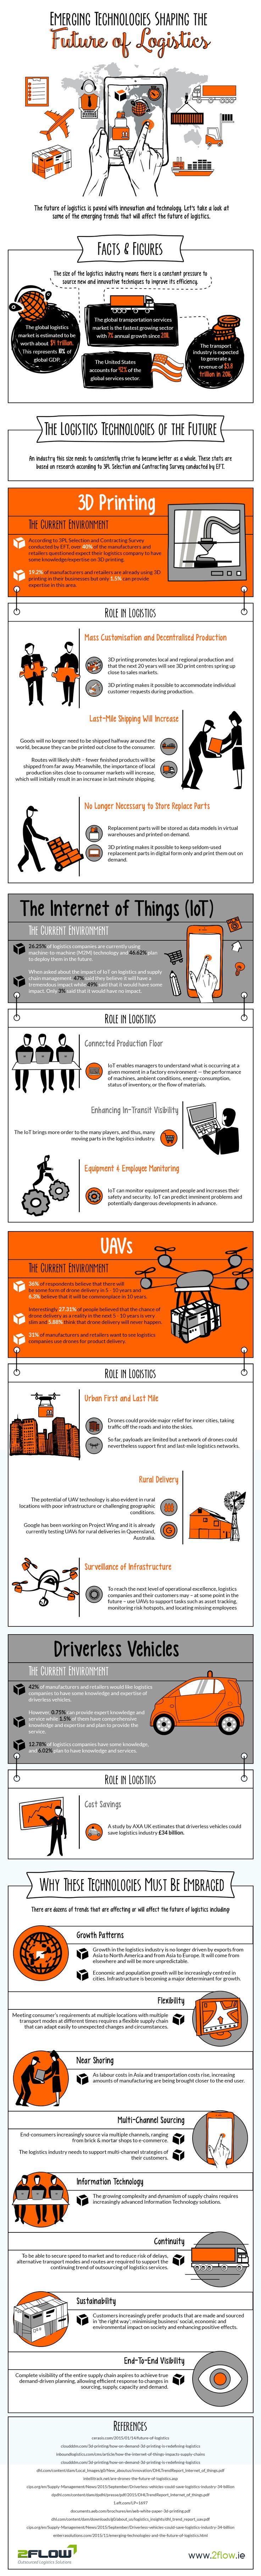 Emerging Technologies Shaping the Future of Logistics #Infographic #Technology